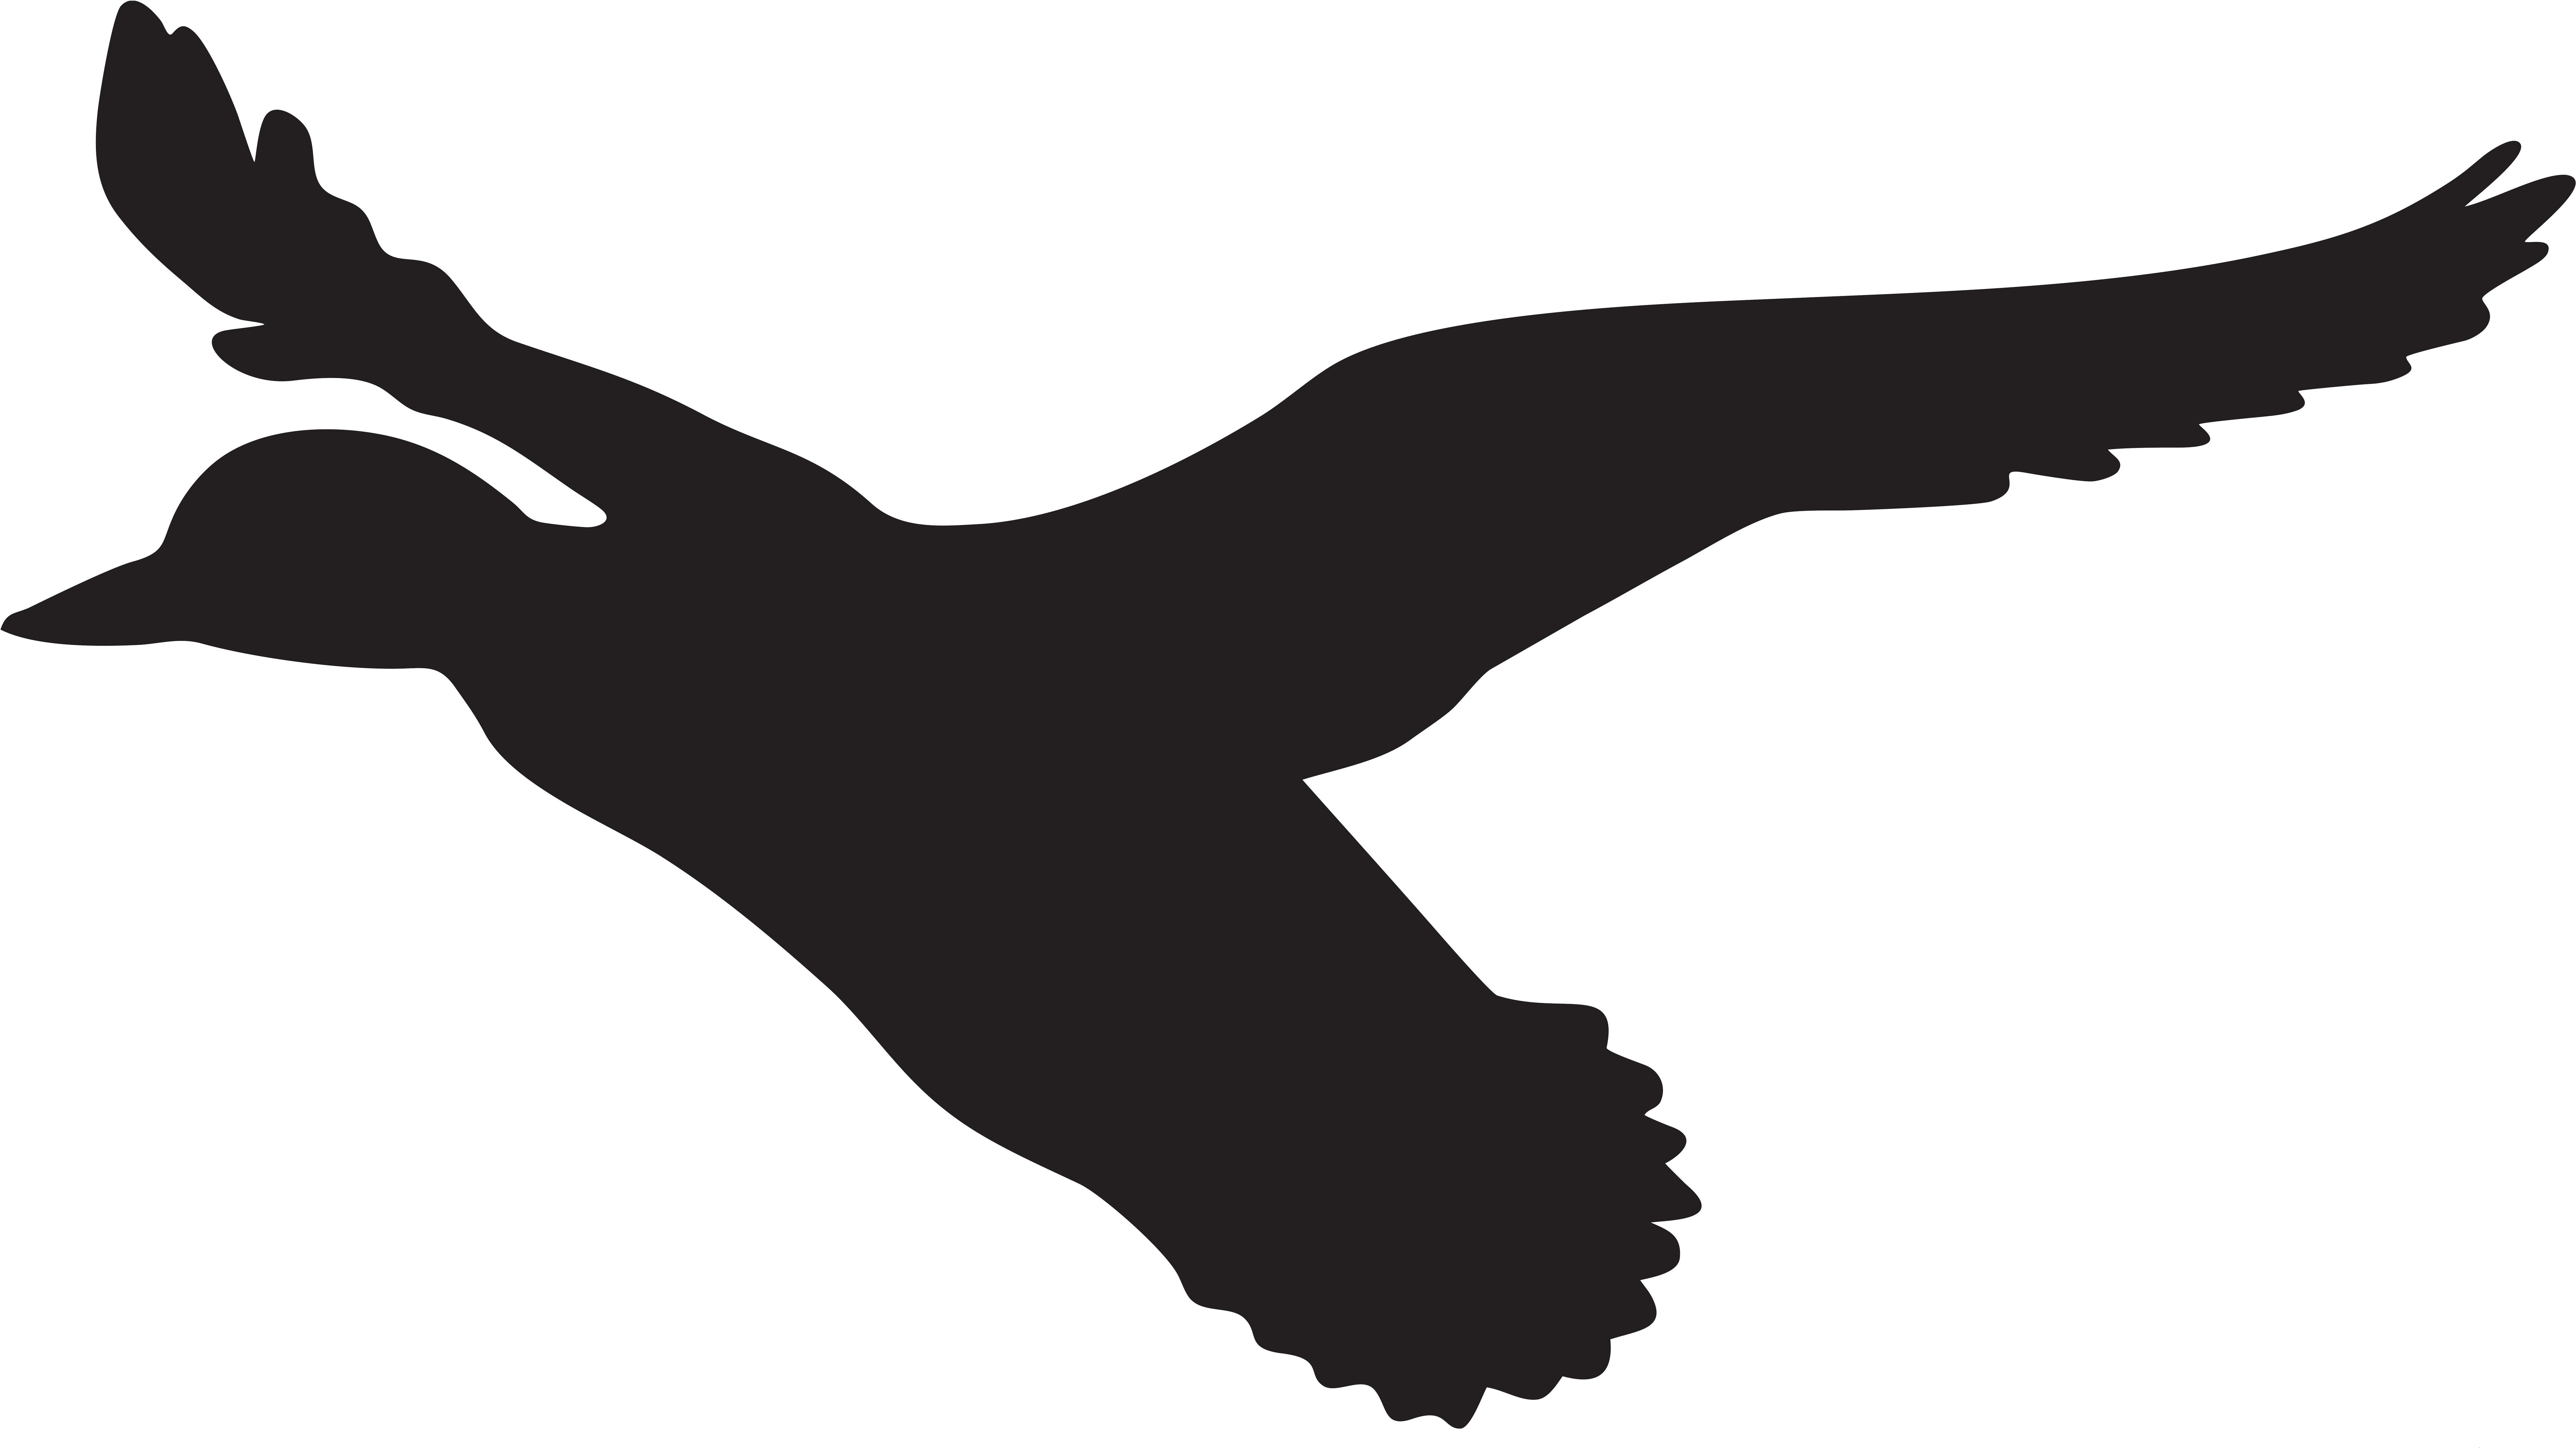 Flying Duck Silhouette Png Clip Art Imageu200b Gallery